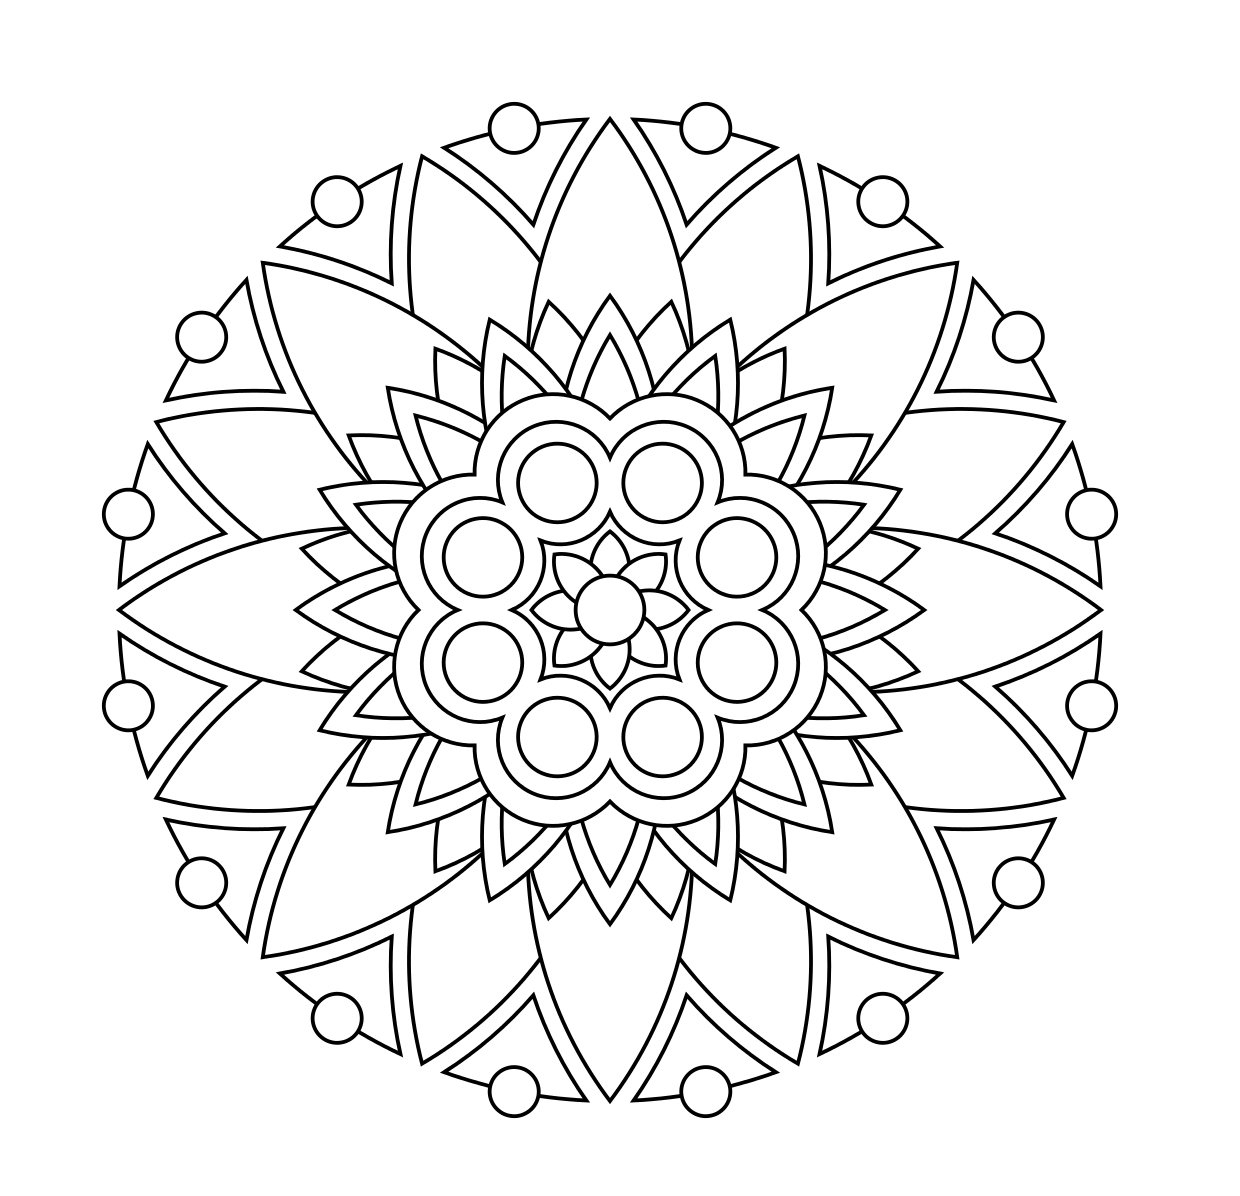 Simple Mandala Coloring Pages 441—440 to Print Of Modern Intricate Mandala Coloring Pages Coloring for Good Mandala to Print